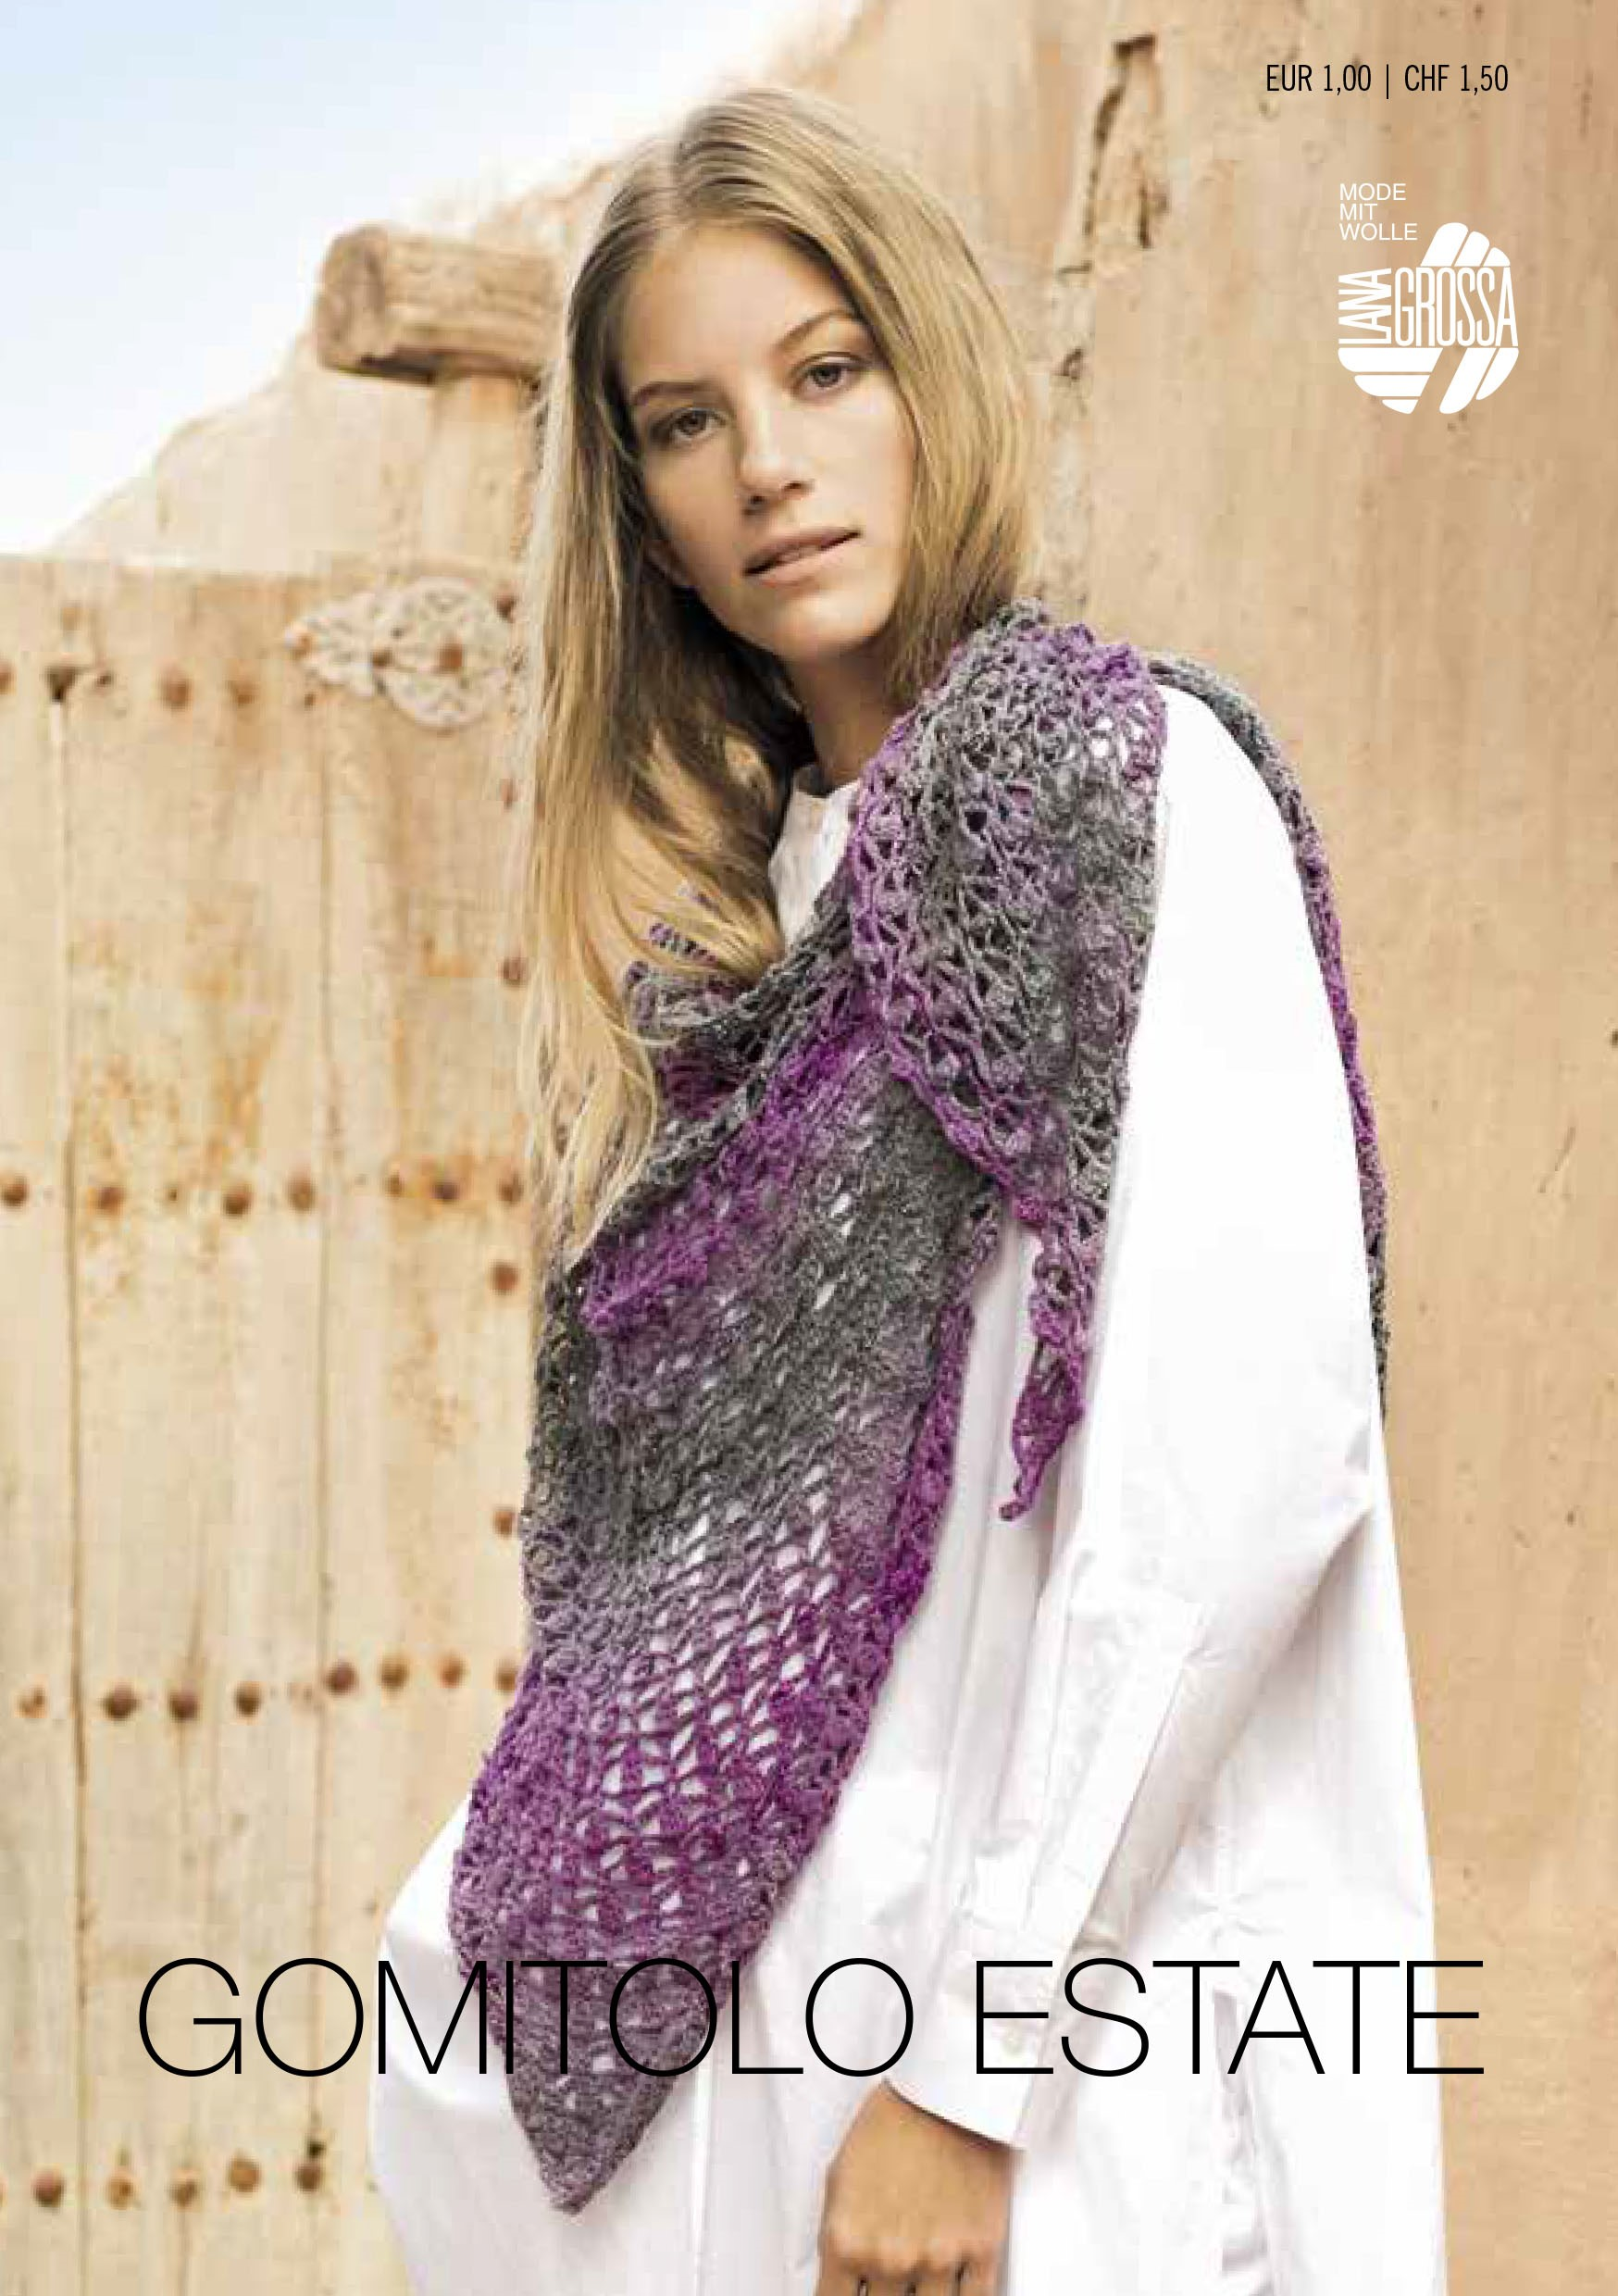 Lana Grossa GOMITOLO ESTATE Flyer - Magazine (DE) + Knitting instructions (EN)